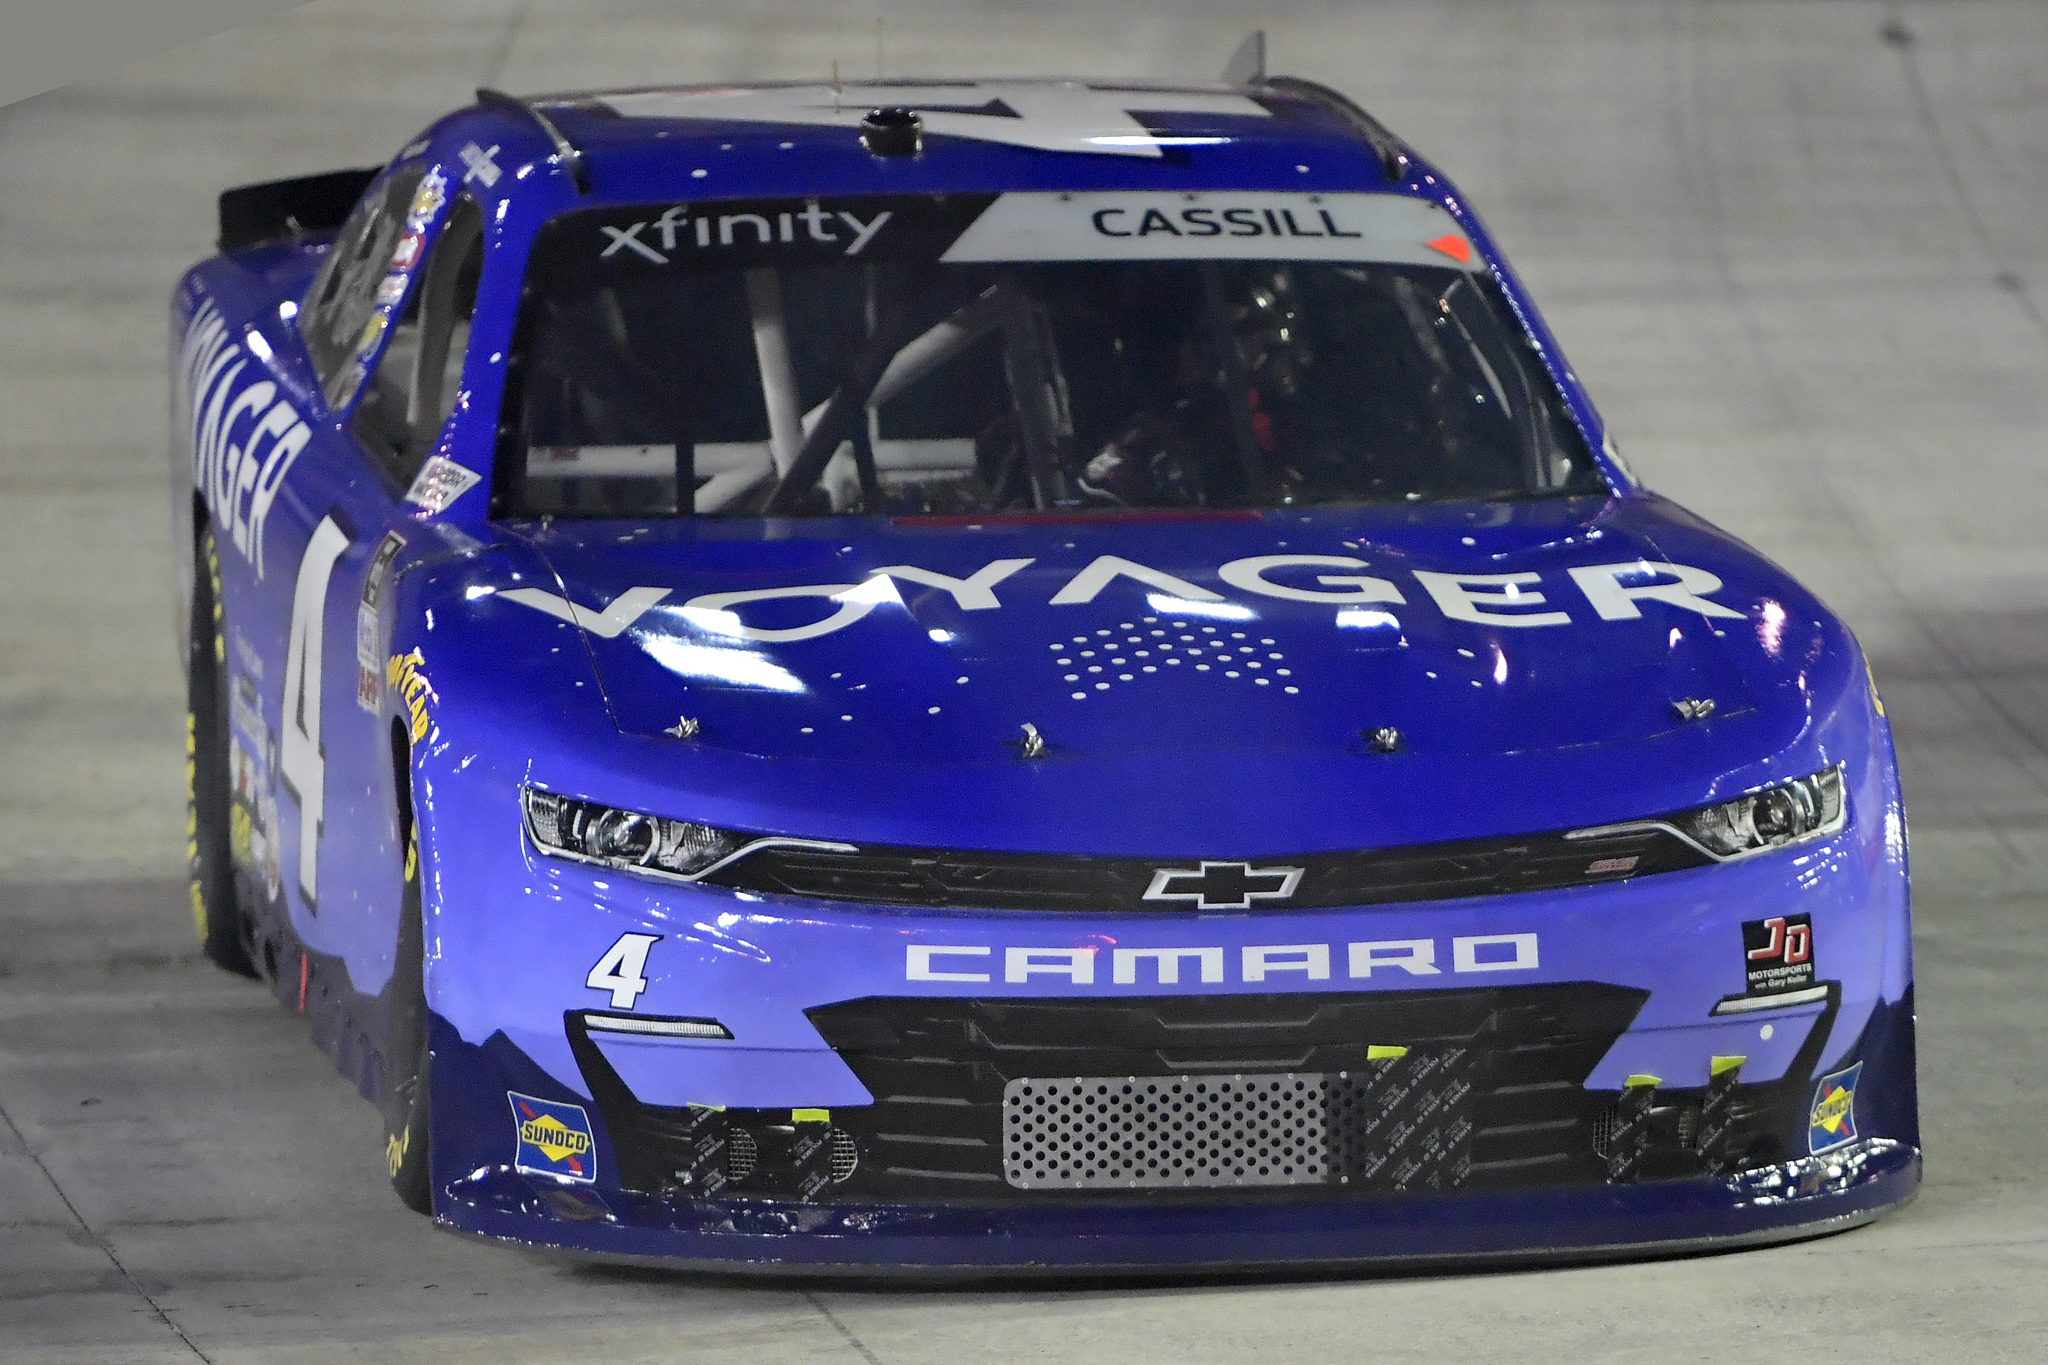 BRISTOL, TENNESSEE - SEPTEMBER 17: Landon Cassill, driver of the #4 Voyager Chevrolet, drives during the NASCAR Xfinity Series Food City 300 at Bristol Motor Speedway on September 17, 2021 in Bristol, Tennessee. (Photo by Logan Riely/Getty Images) | Getty Images